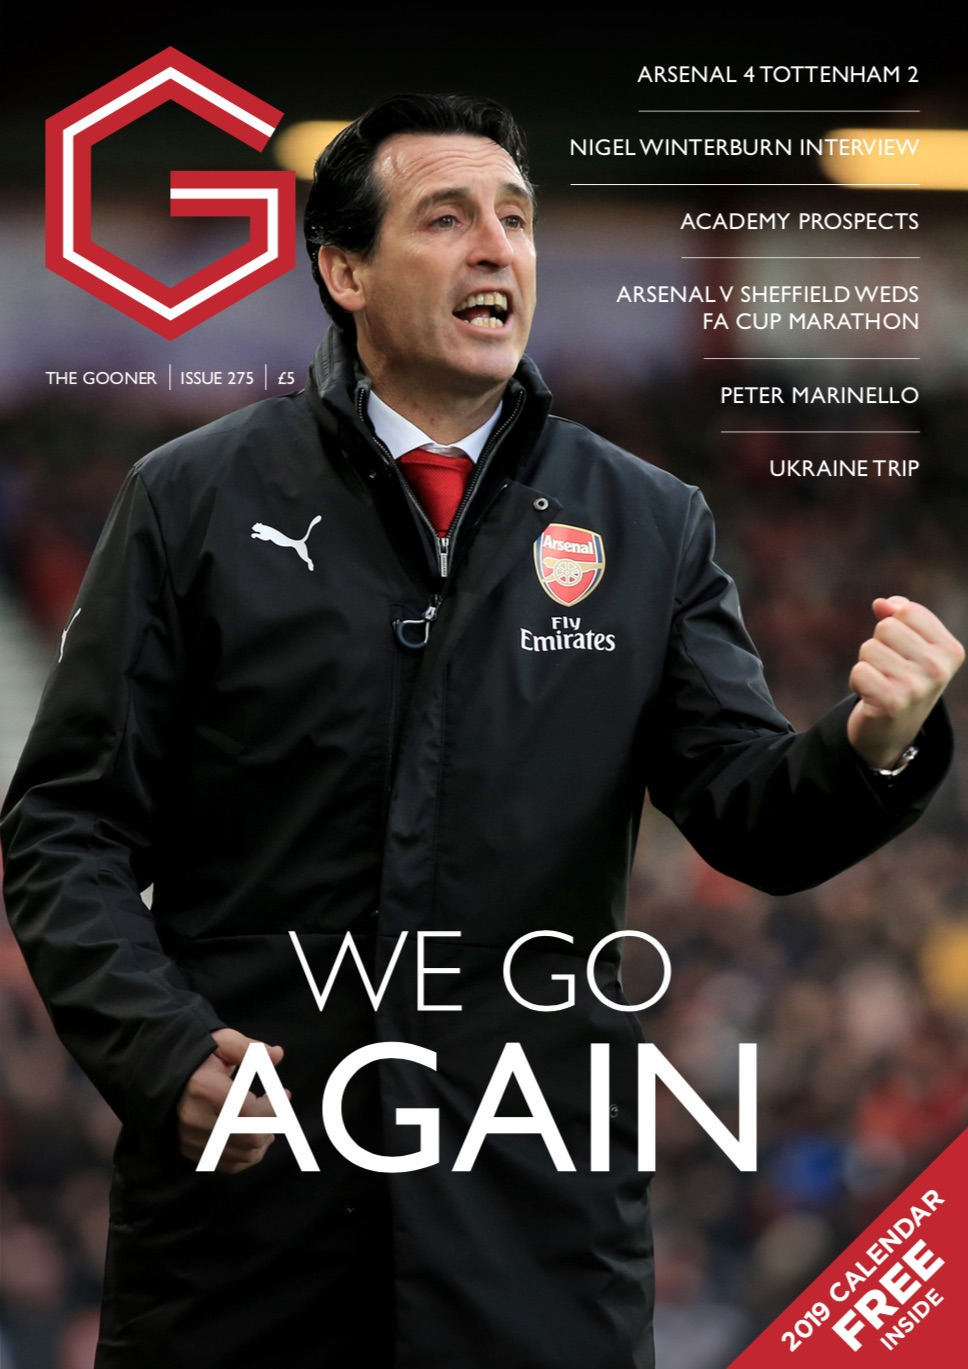 Gooner Issue 275 - Front Cover